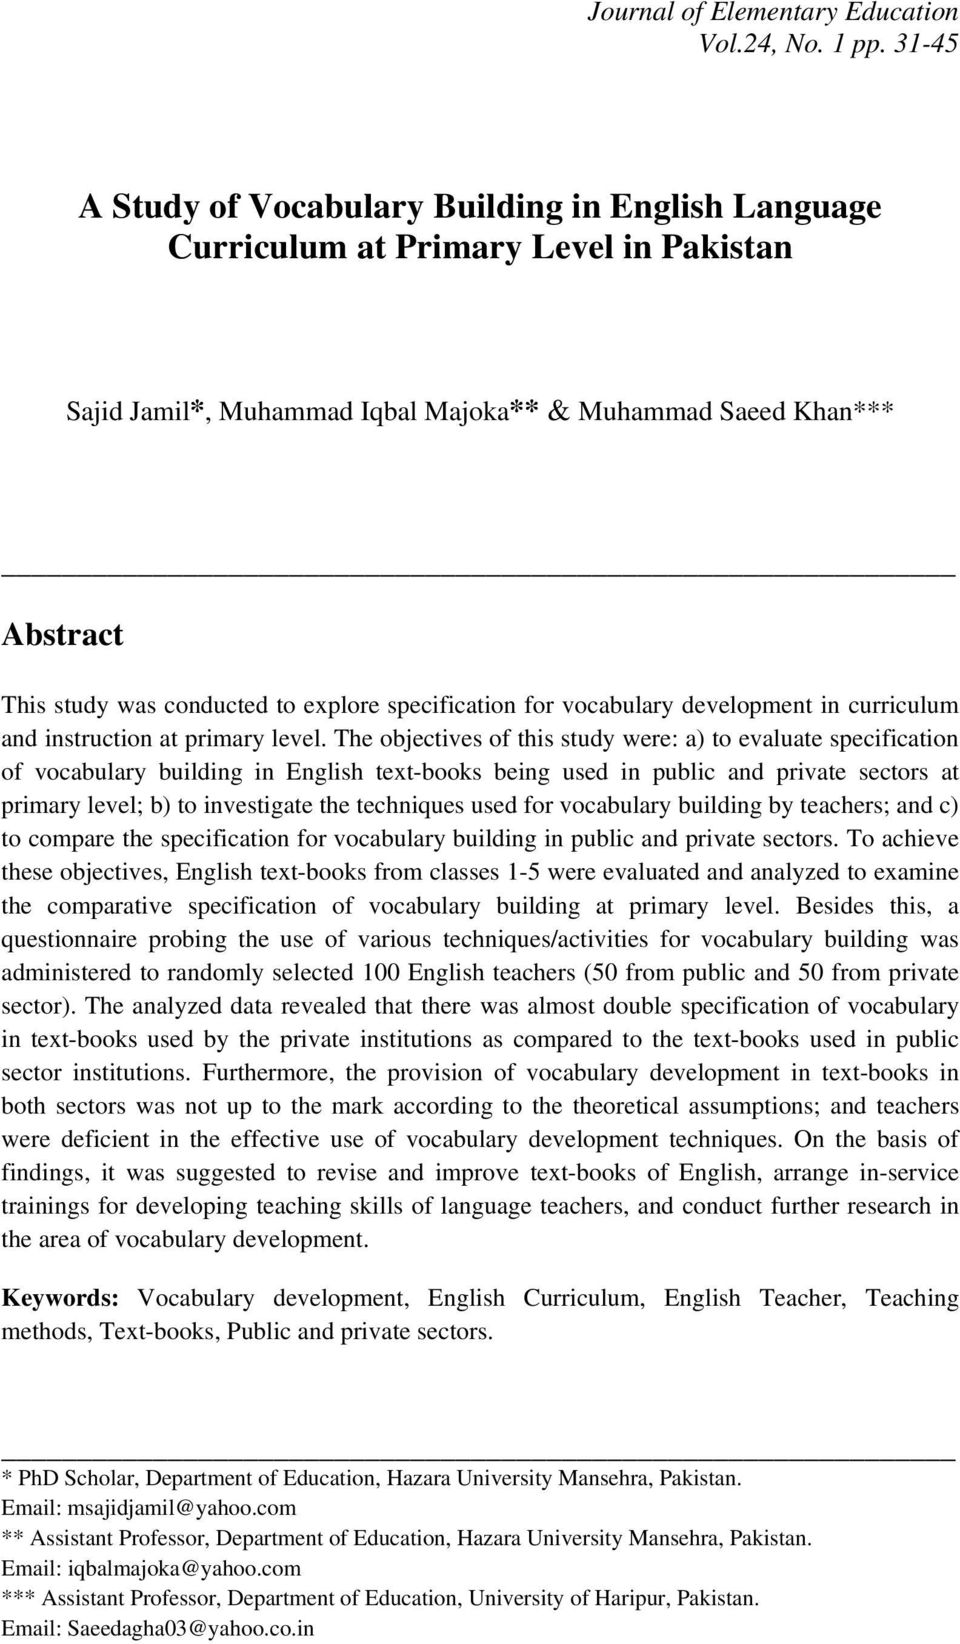 A Study of Vocabulary Building in English Language